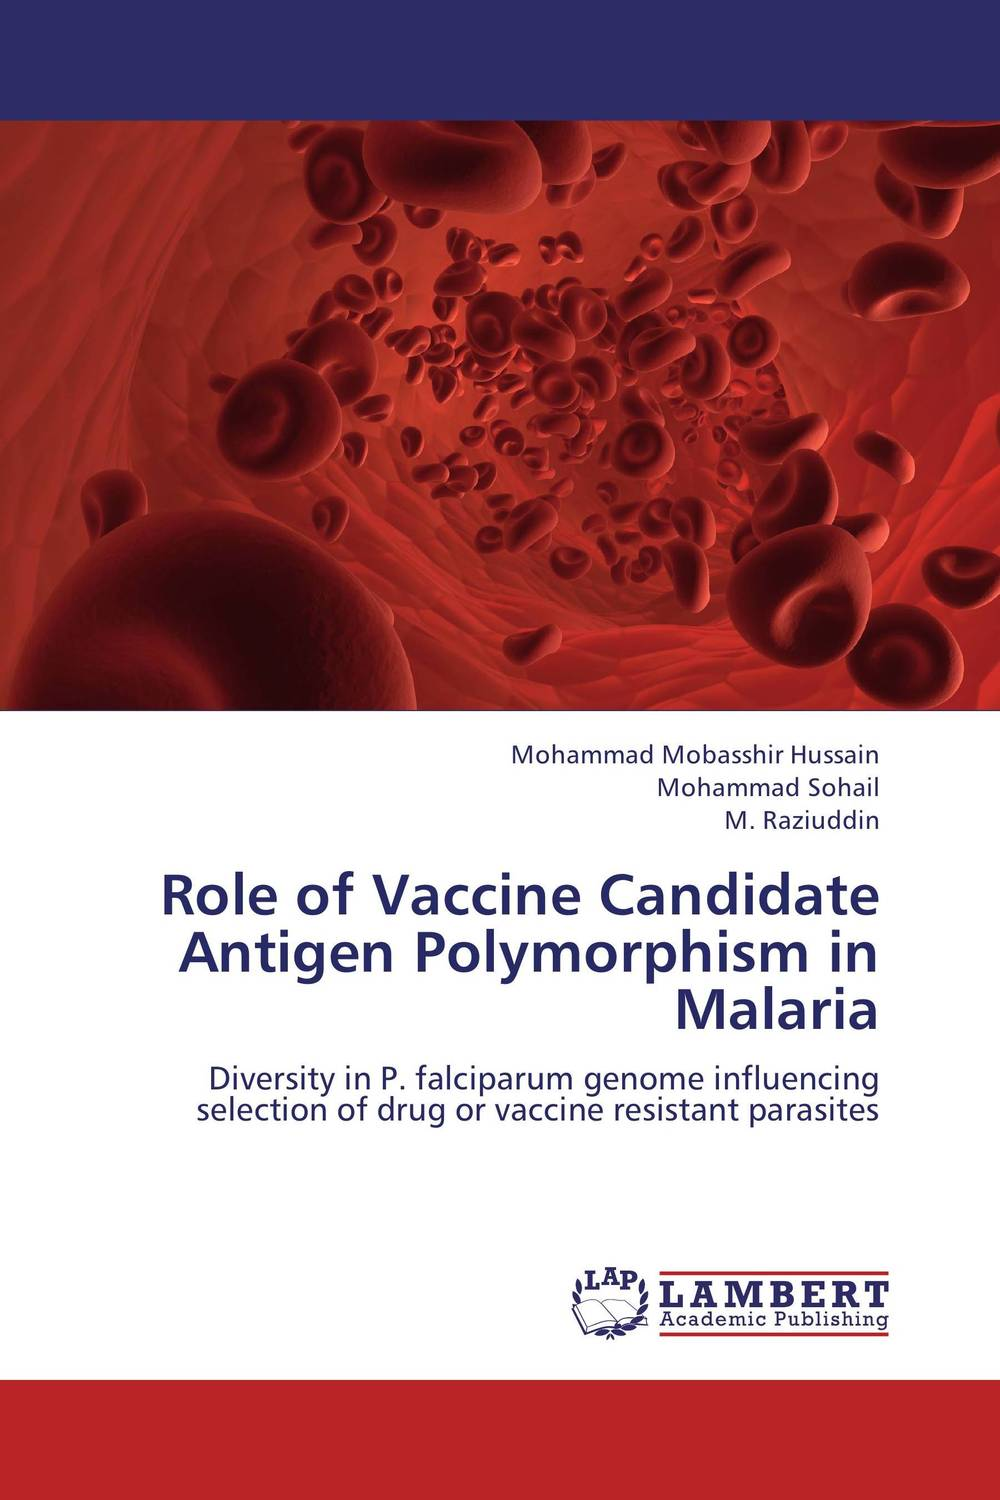 Role of Vaccine Candidate Antigen Polymorphism in Malaria купить